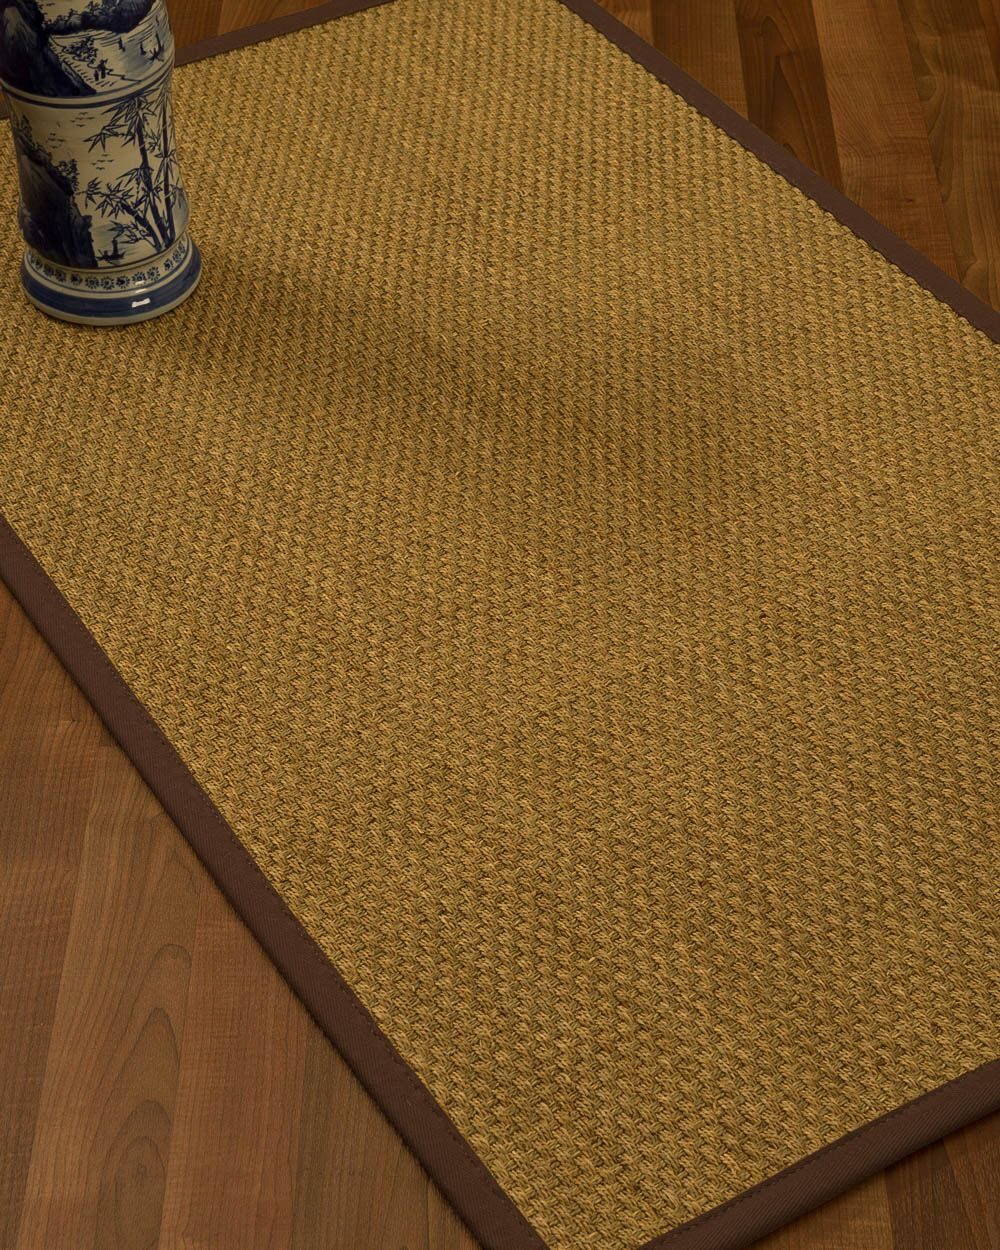 Rosabel Border Hand-Woven Beige/Brown Area Rug Rug Size: Rectangle 8' x 10', Rug Pad Included: Yes